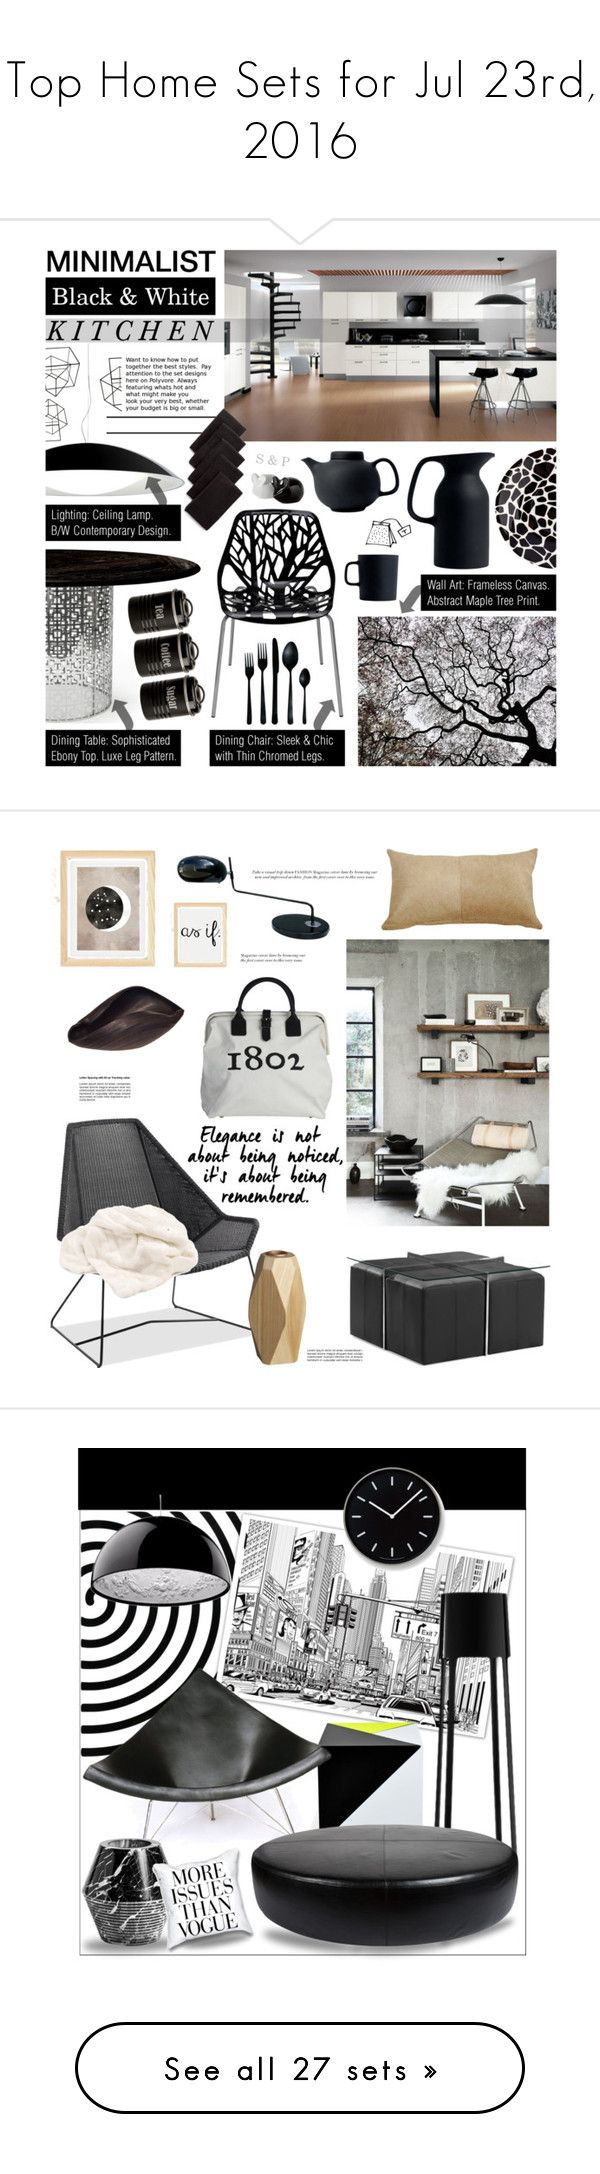 """Top Home Sets for Jul 23rd, 2016"" by polyvore ❤ liked on Polyvore featuring interior, interiors, interior design, home, home decor, interior decorating, Kartell, Jonathan Adler, Nuevo and Typhoon"